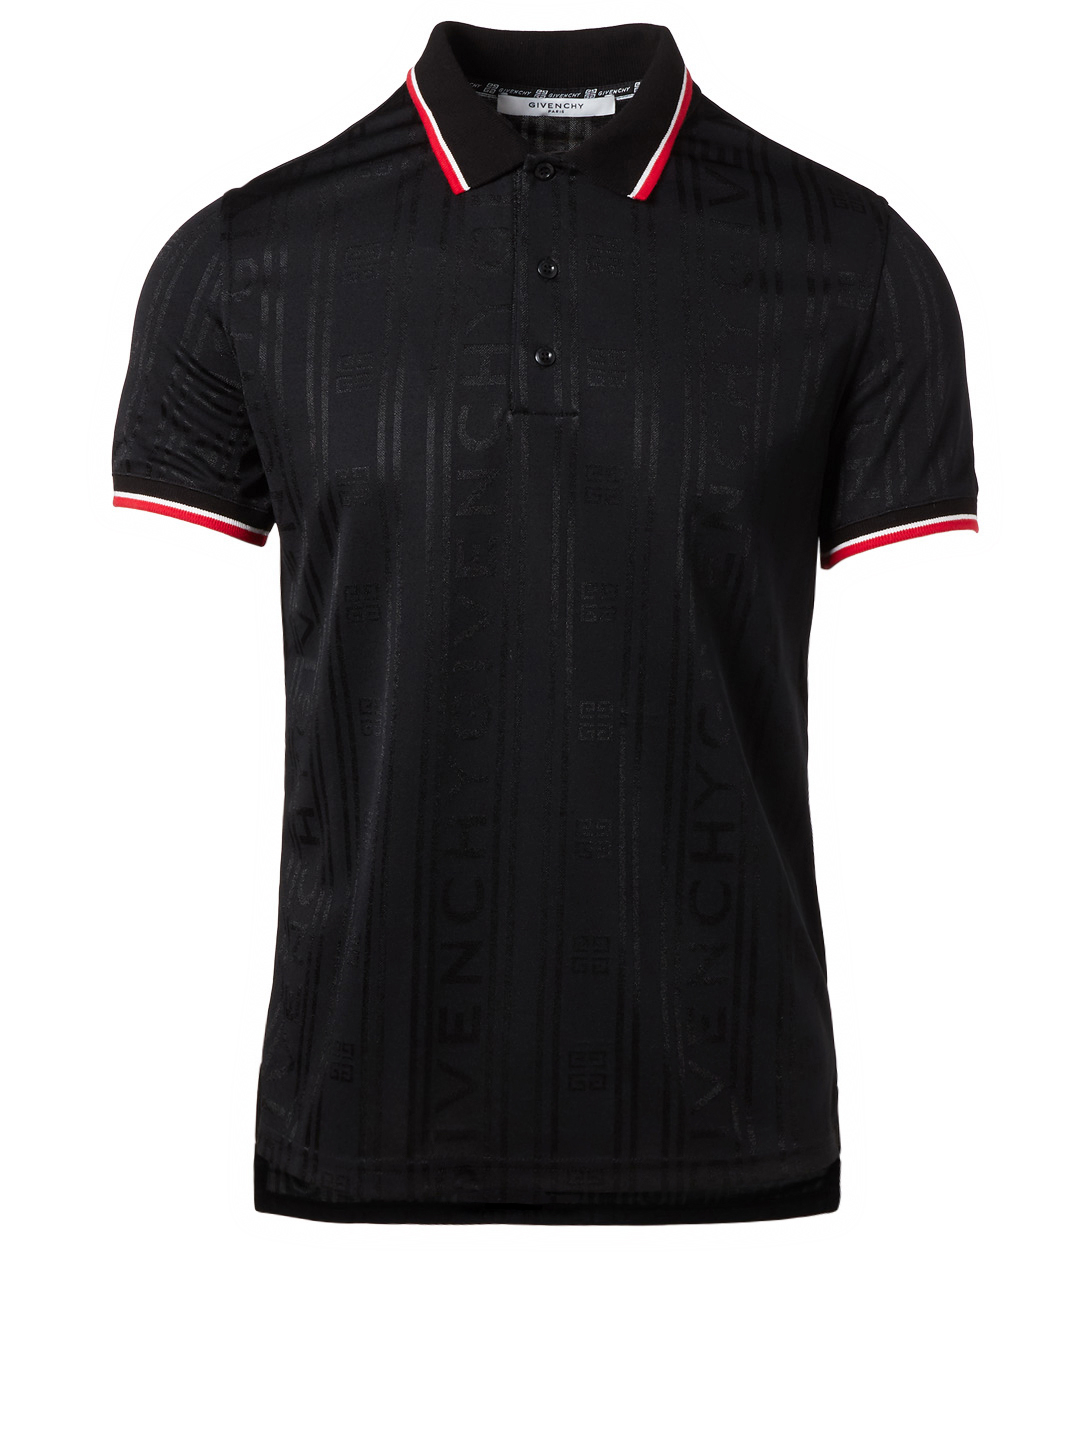 GIVENCHY Short Sleeve Polo Shirt Men's Black